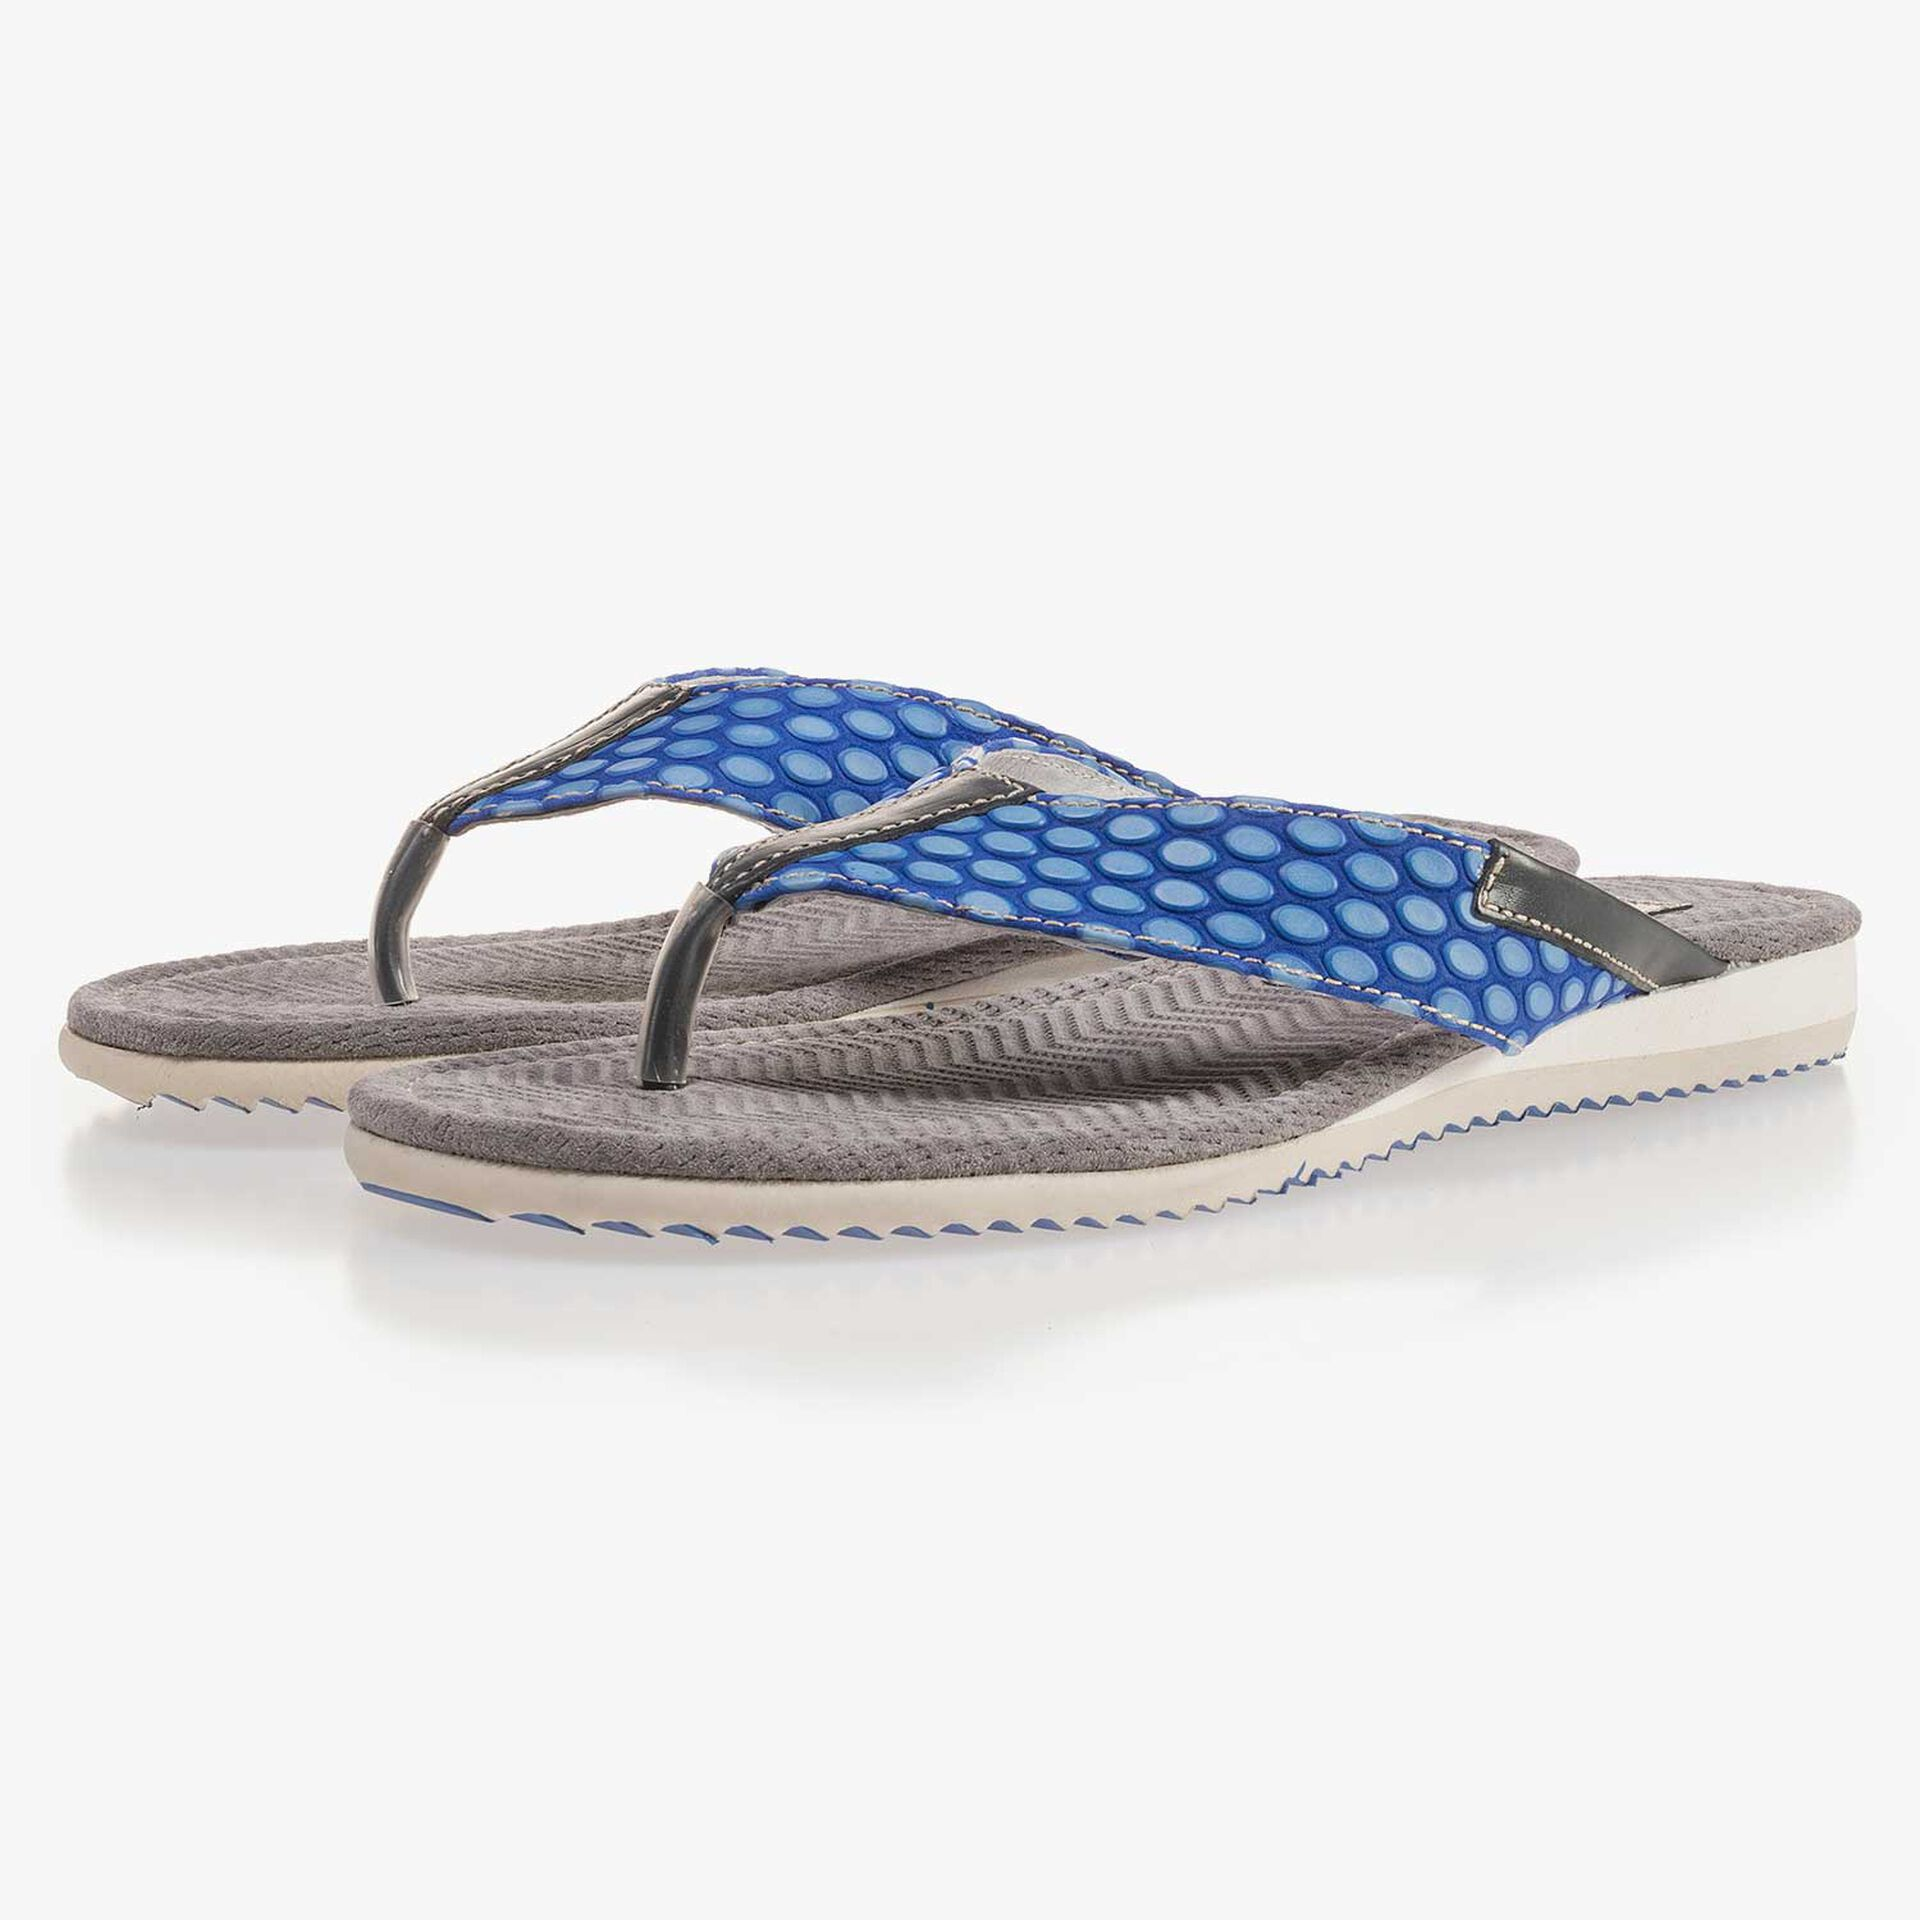 Cobalt clue, printed leather thong slipper